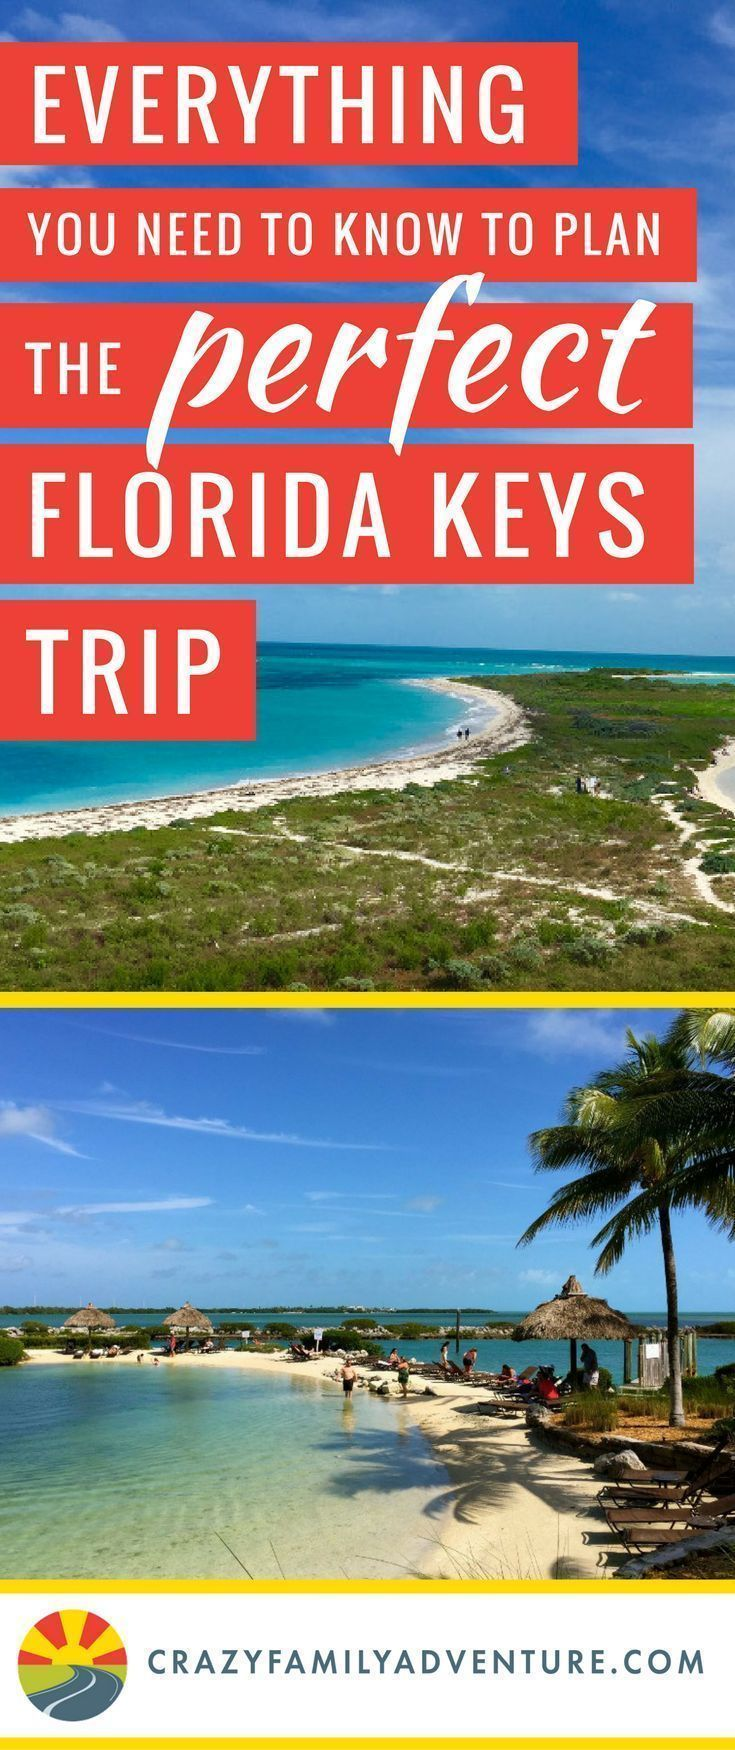 Everything You Need To Know To Plan The Perfect Florida Keys Vacation The Best Beaches Things To Do Best Island Vacation Vacation Usa Usa Travel Destinations